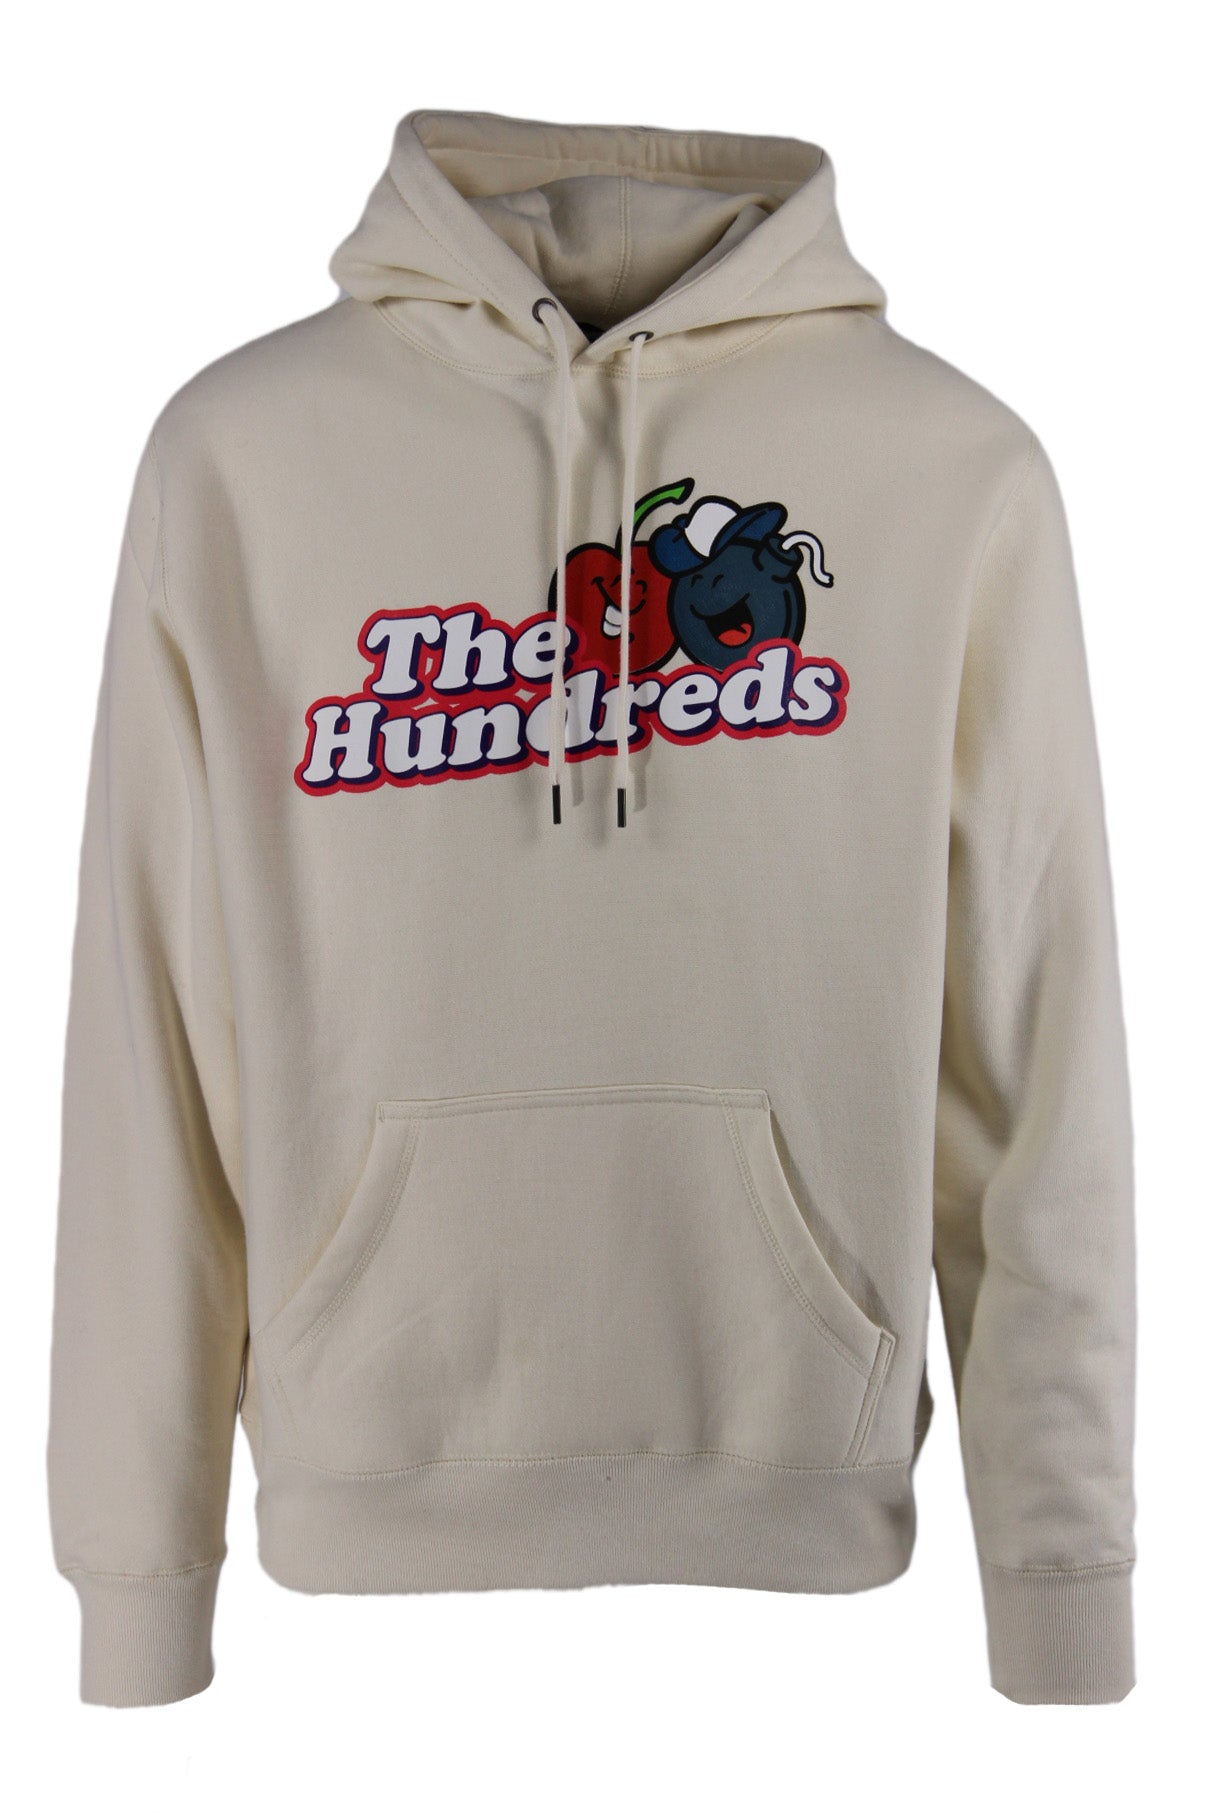 the hundreds off-white pullover hoodie. features 'the hundreds' logo graphic printed at chest, kangaroo pouch pocket at front, and drawstrings at hood.